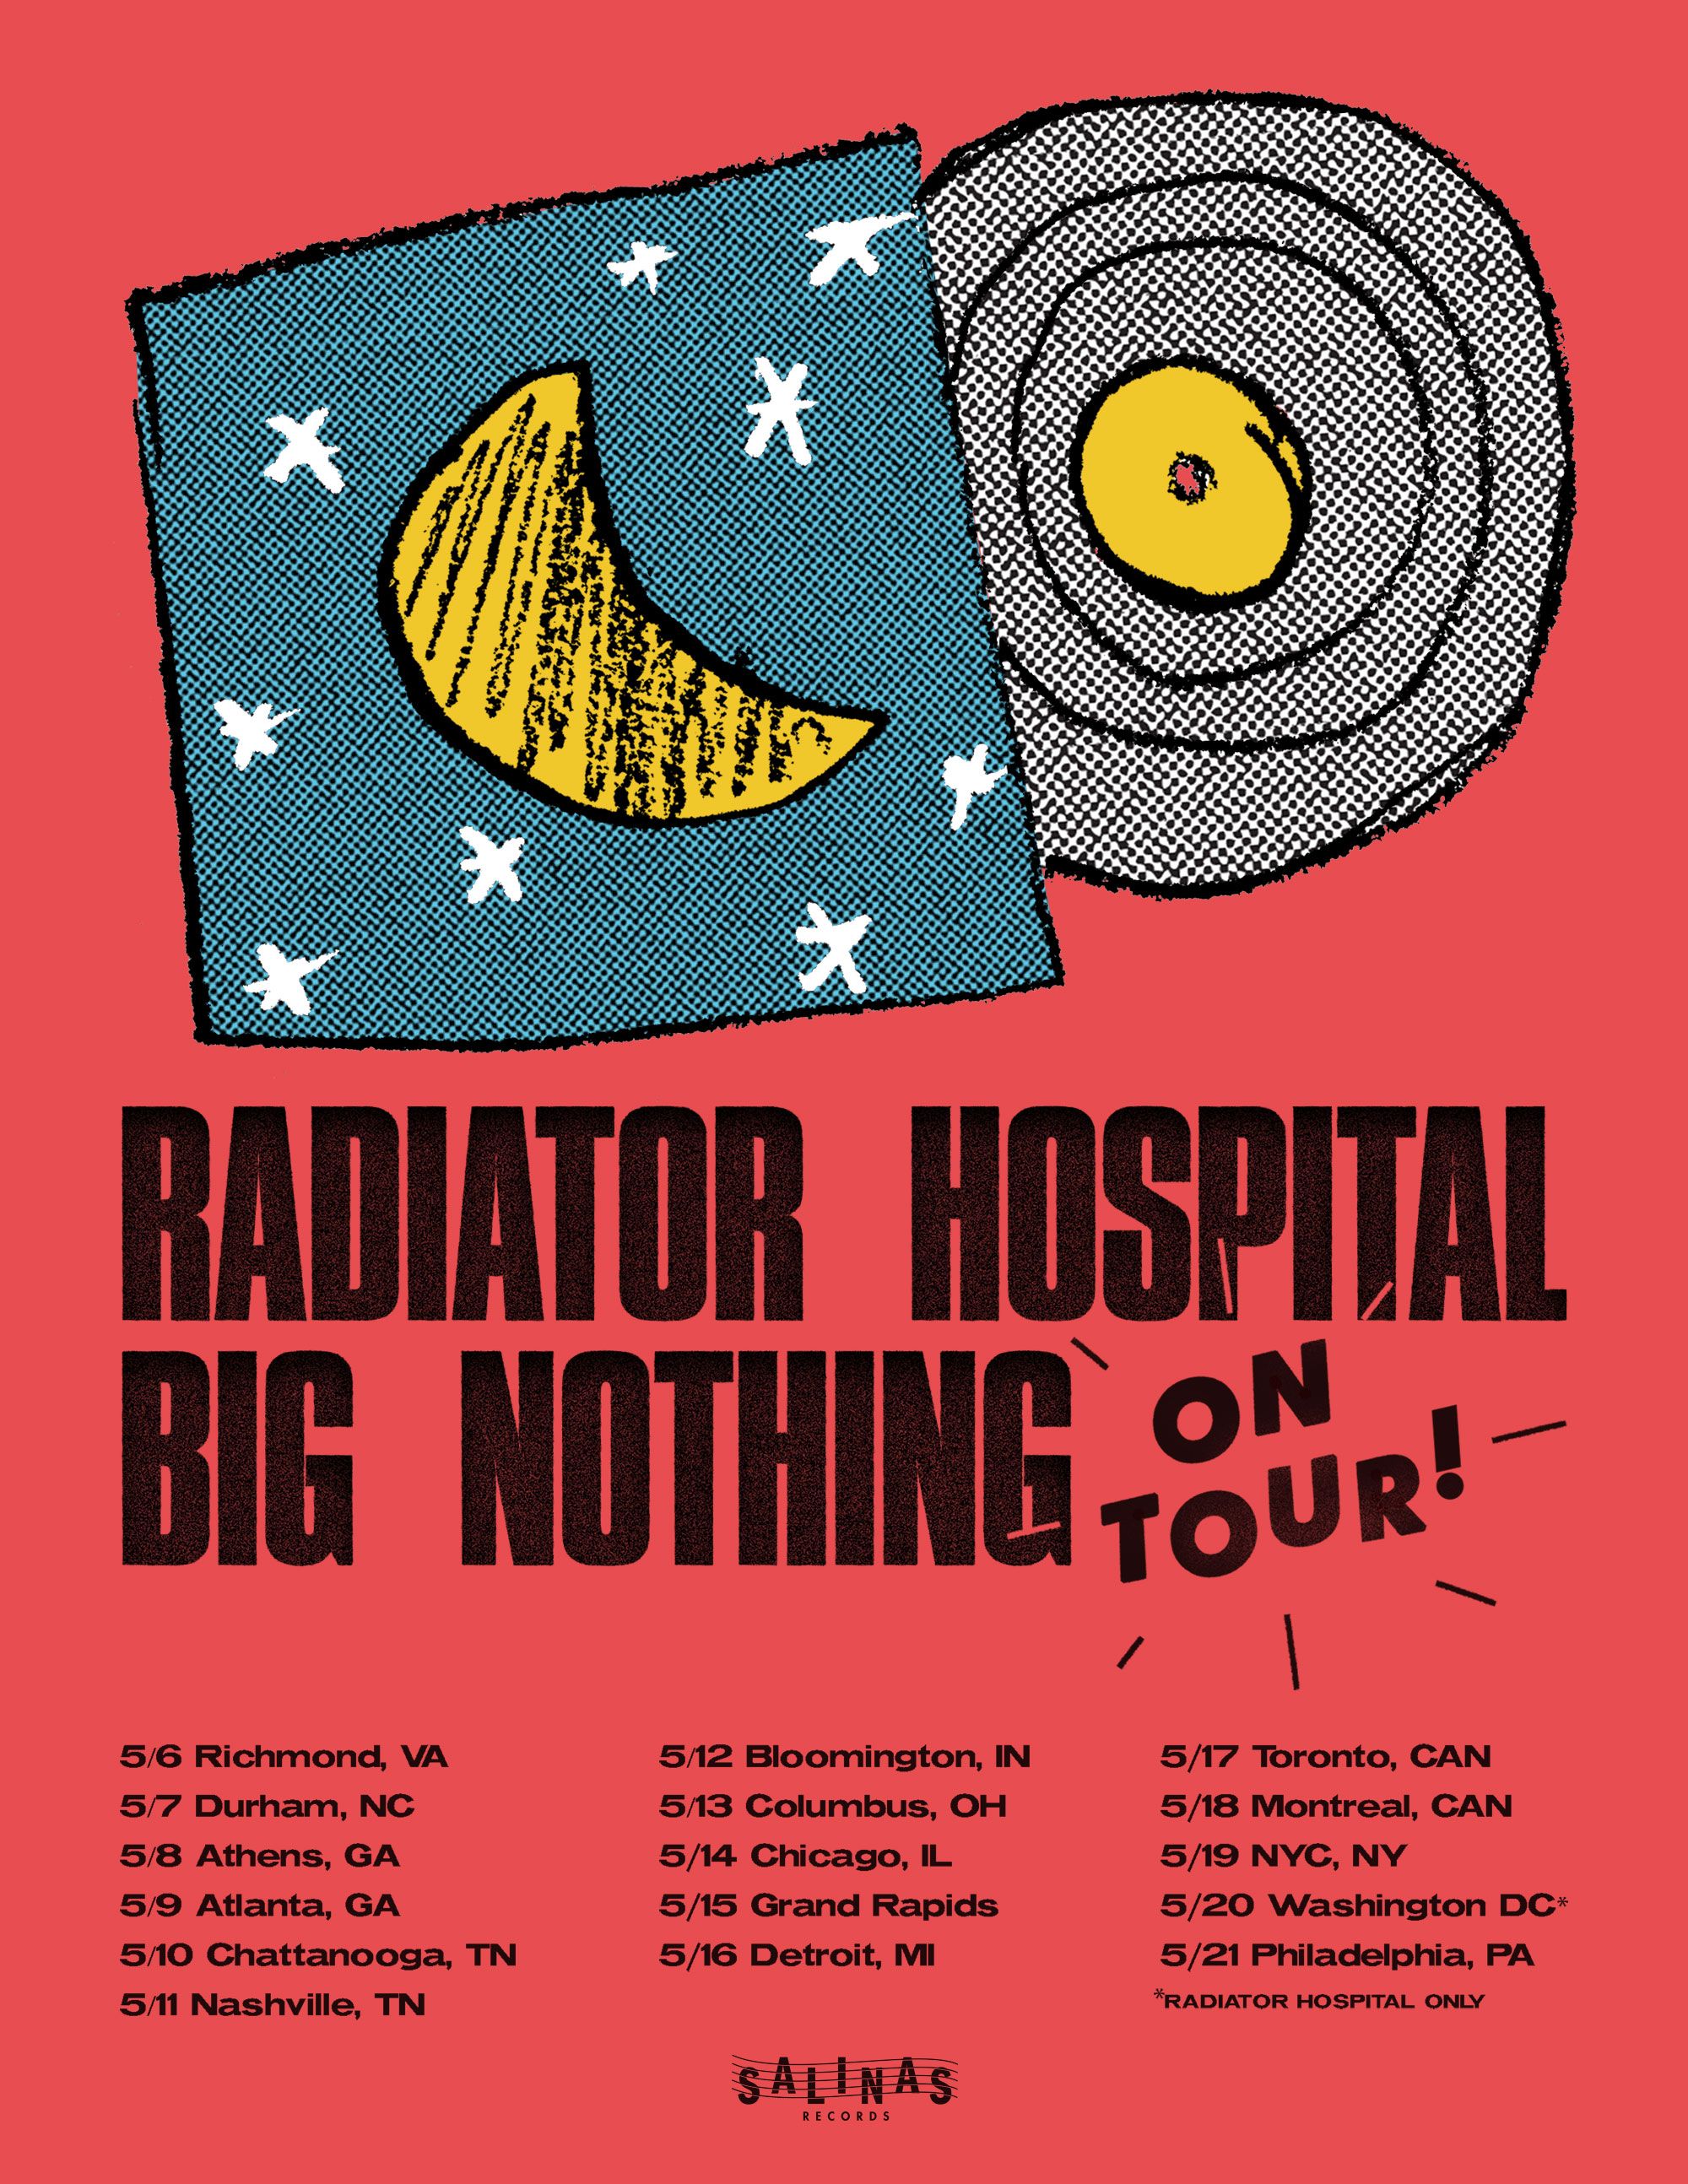 radiator-hospital-big-nothing-may-2019-tour-poster - The